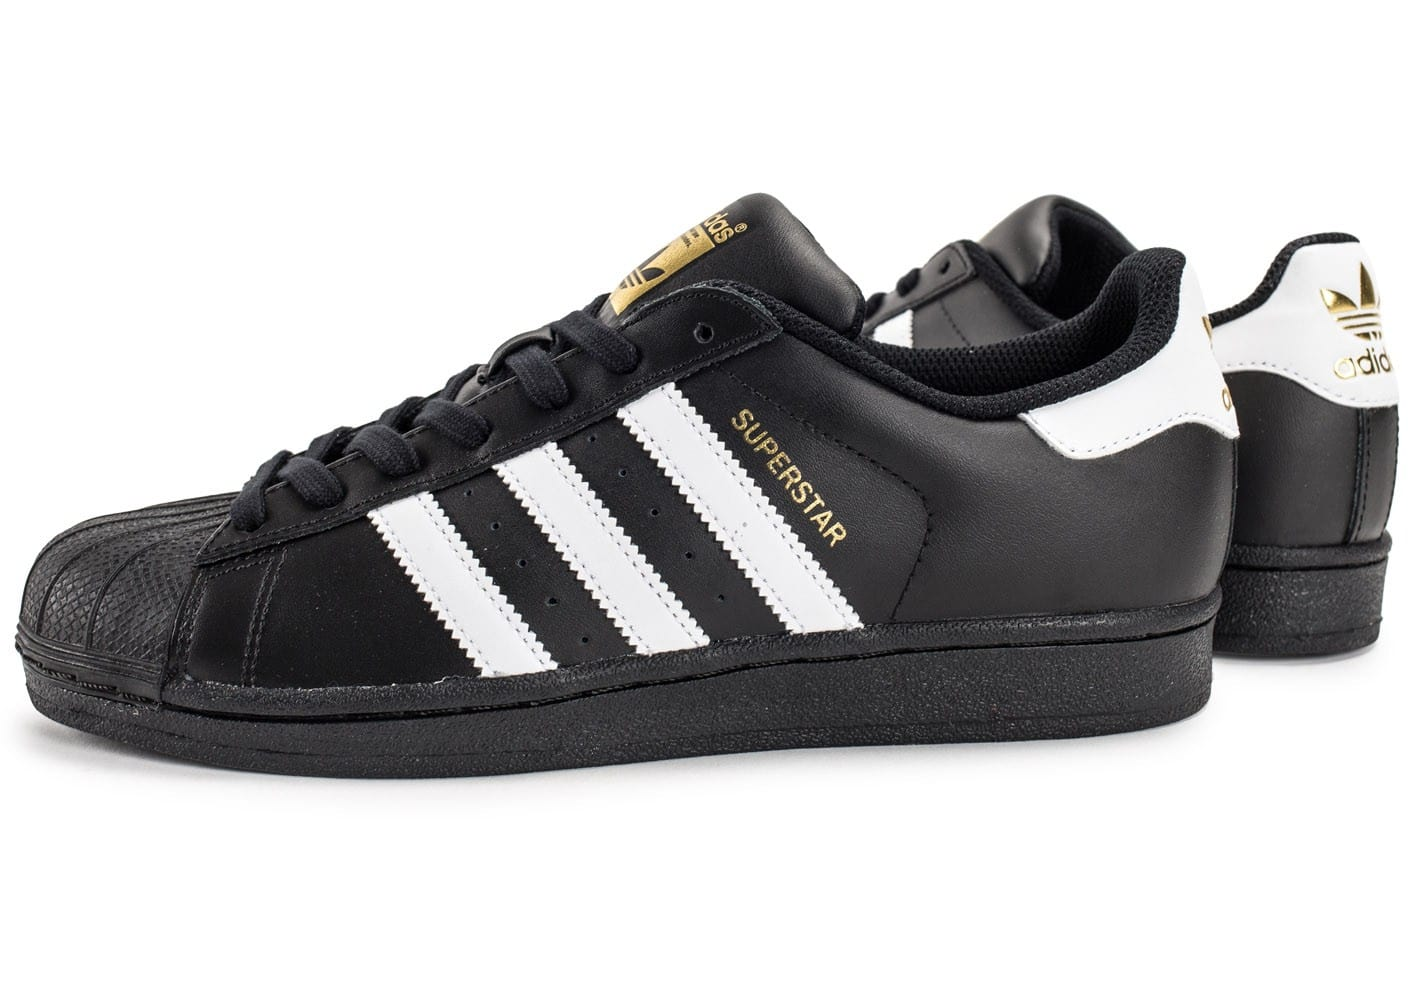 Superstar Adidas Chausport Homme Authentique Baskets Réduction q6vE8cS7